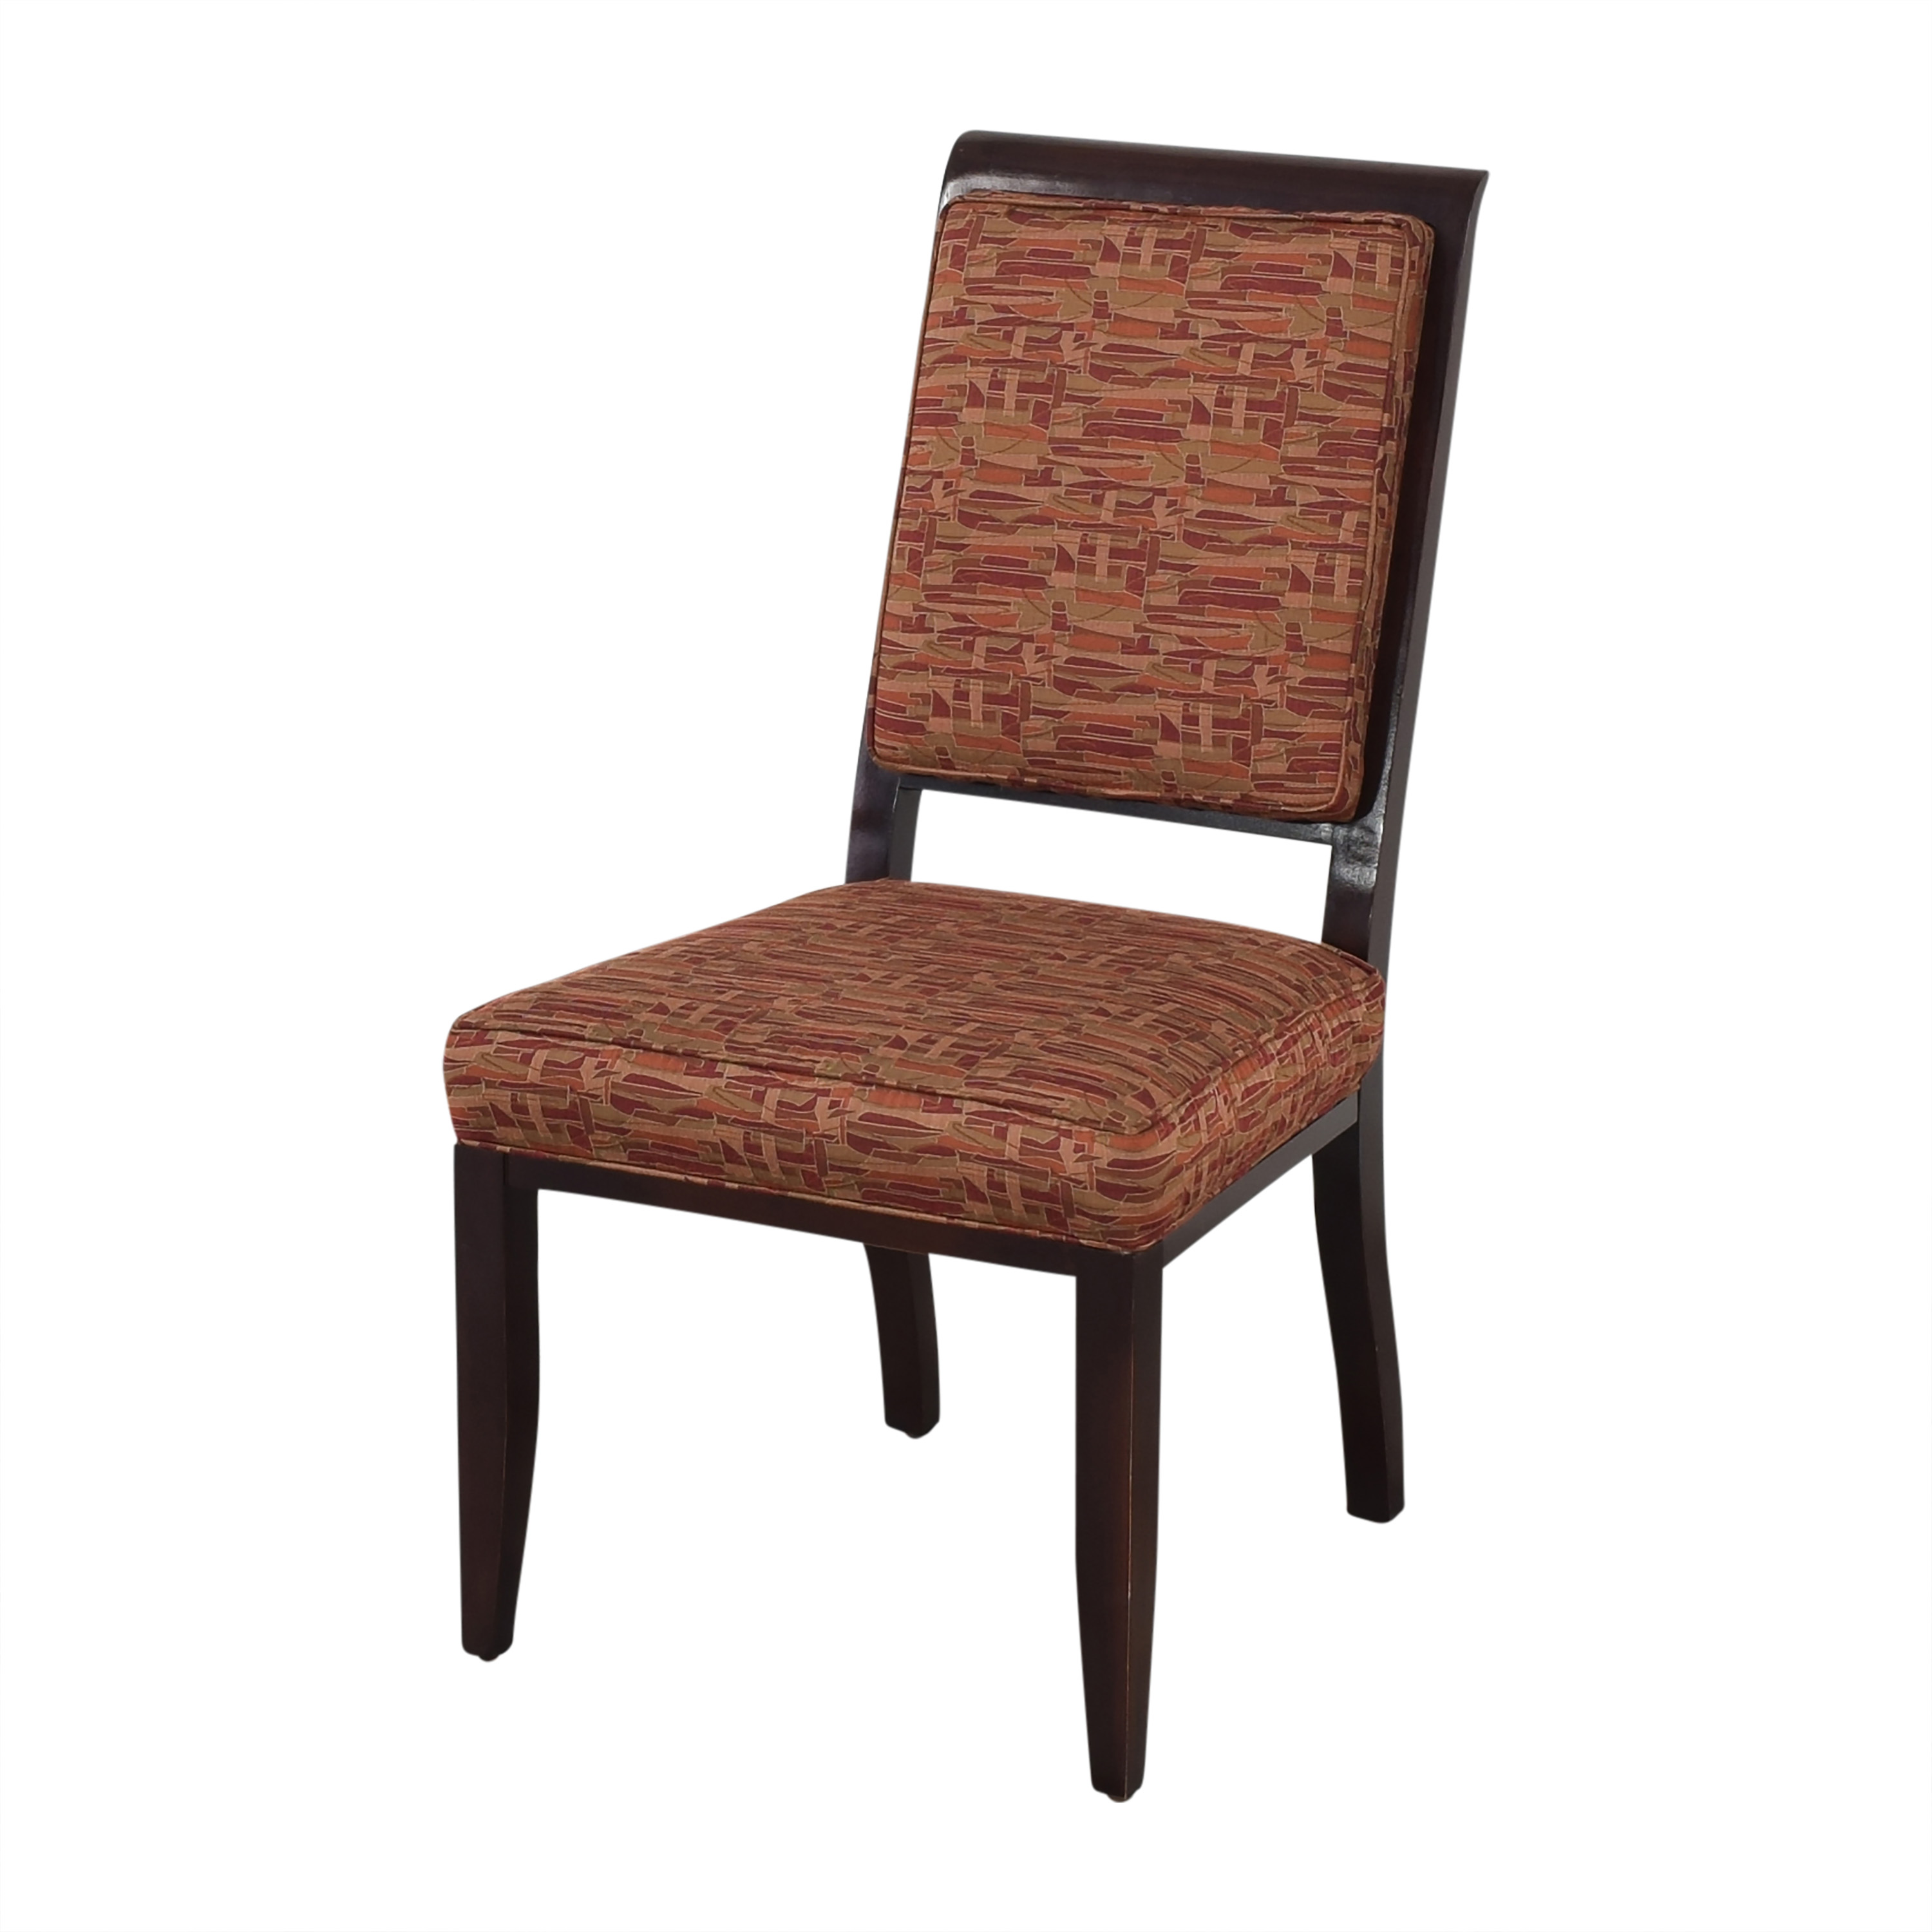 Henredon Furniture Upholstered Dining Chairs / Chairs